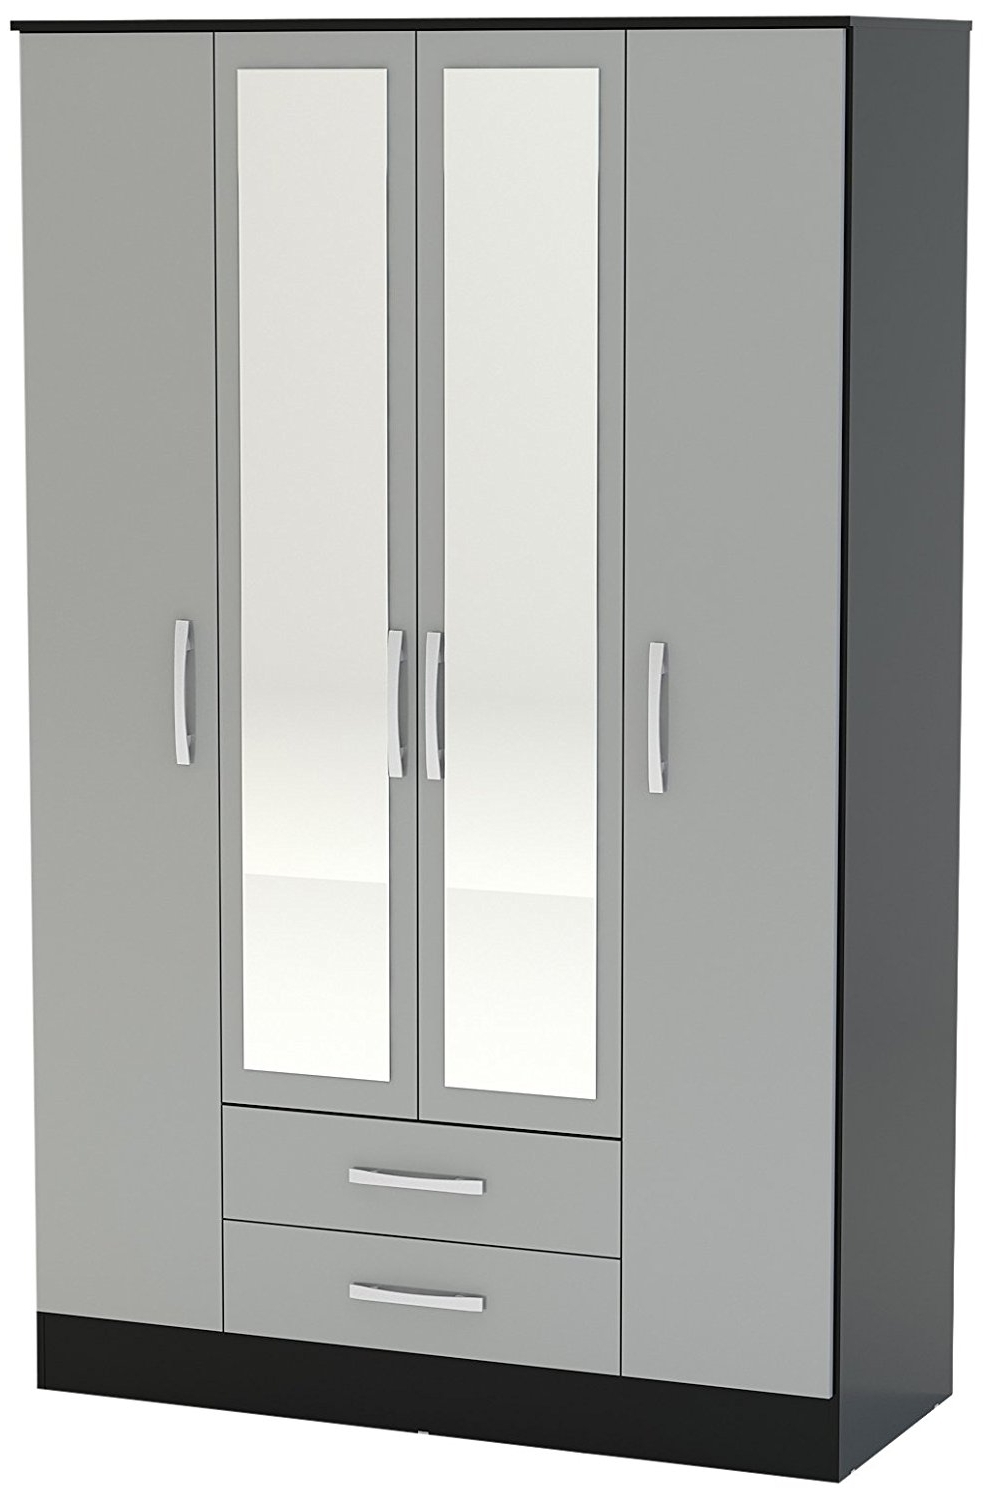 Grey Wardrobes Throughout Well Liked Birlea Lynx 4 Door 2 Drawer Wardrobe With Mirror – High Gloss (View 1 of 15)